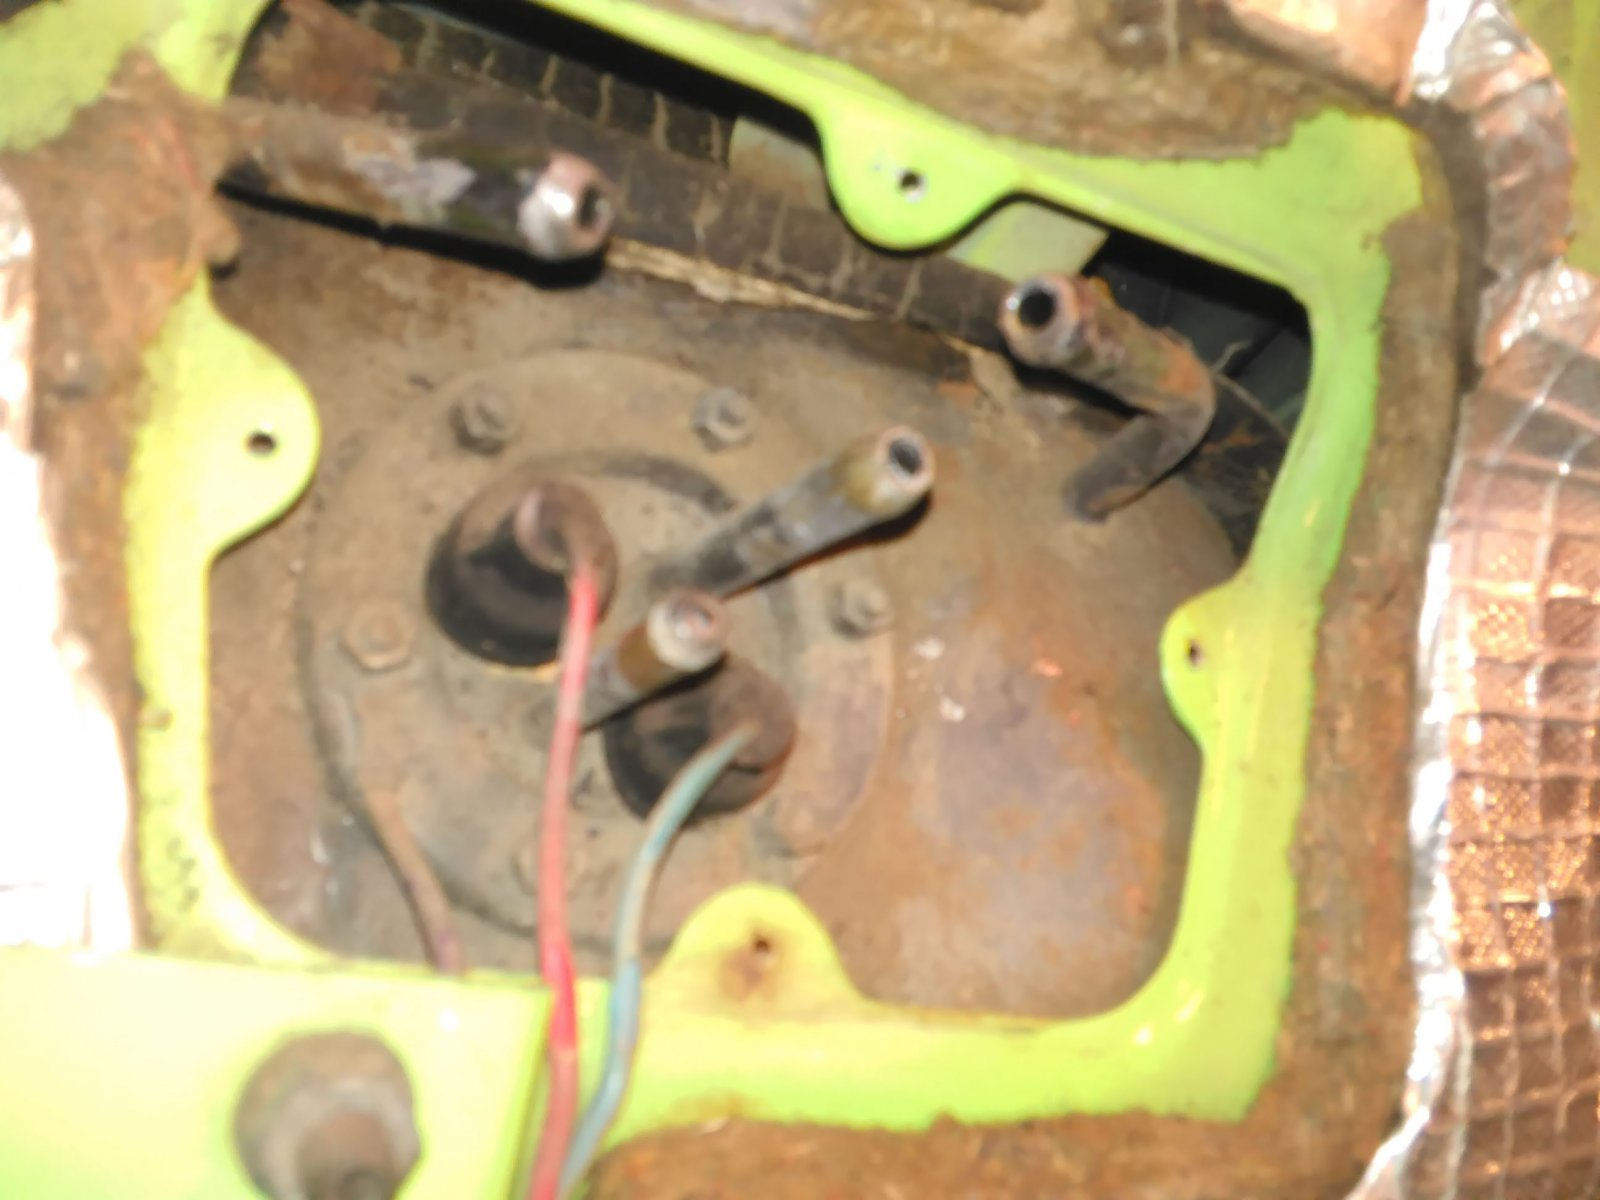 Gas Tank Connections - Close Up without Cover.jpg